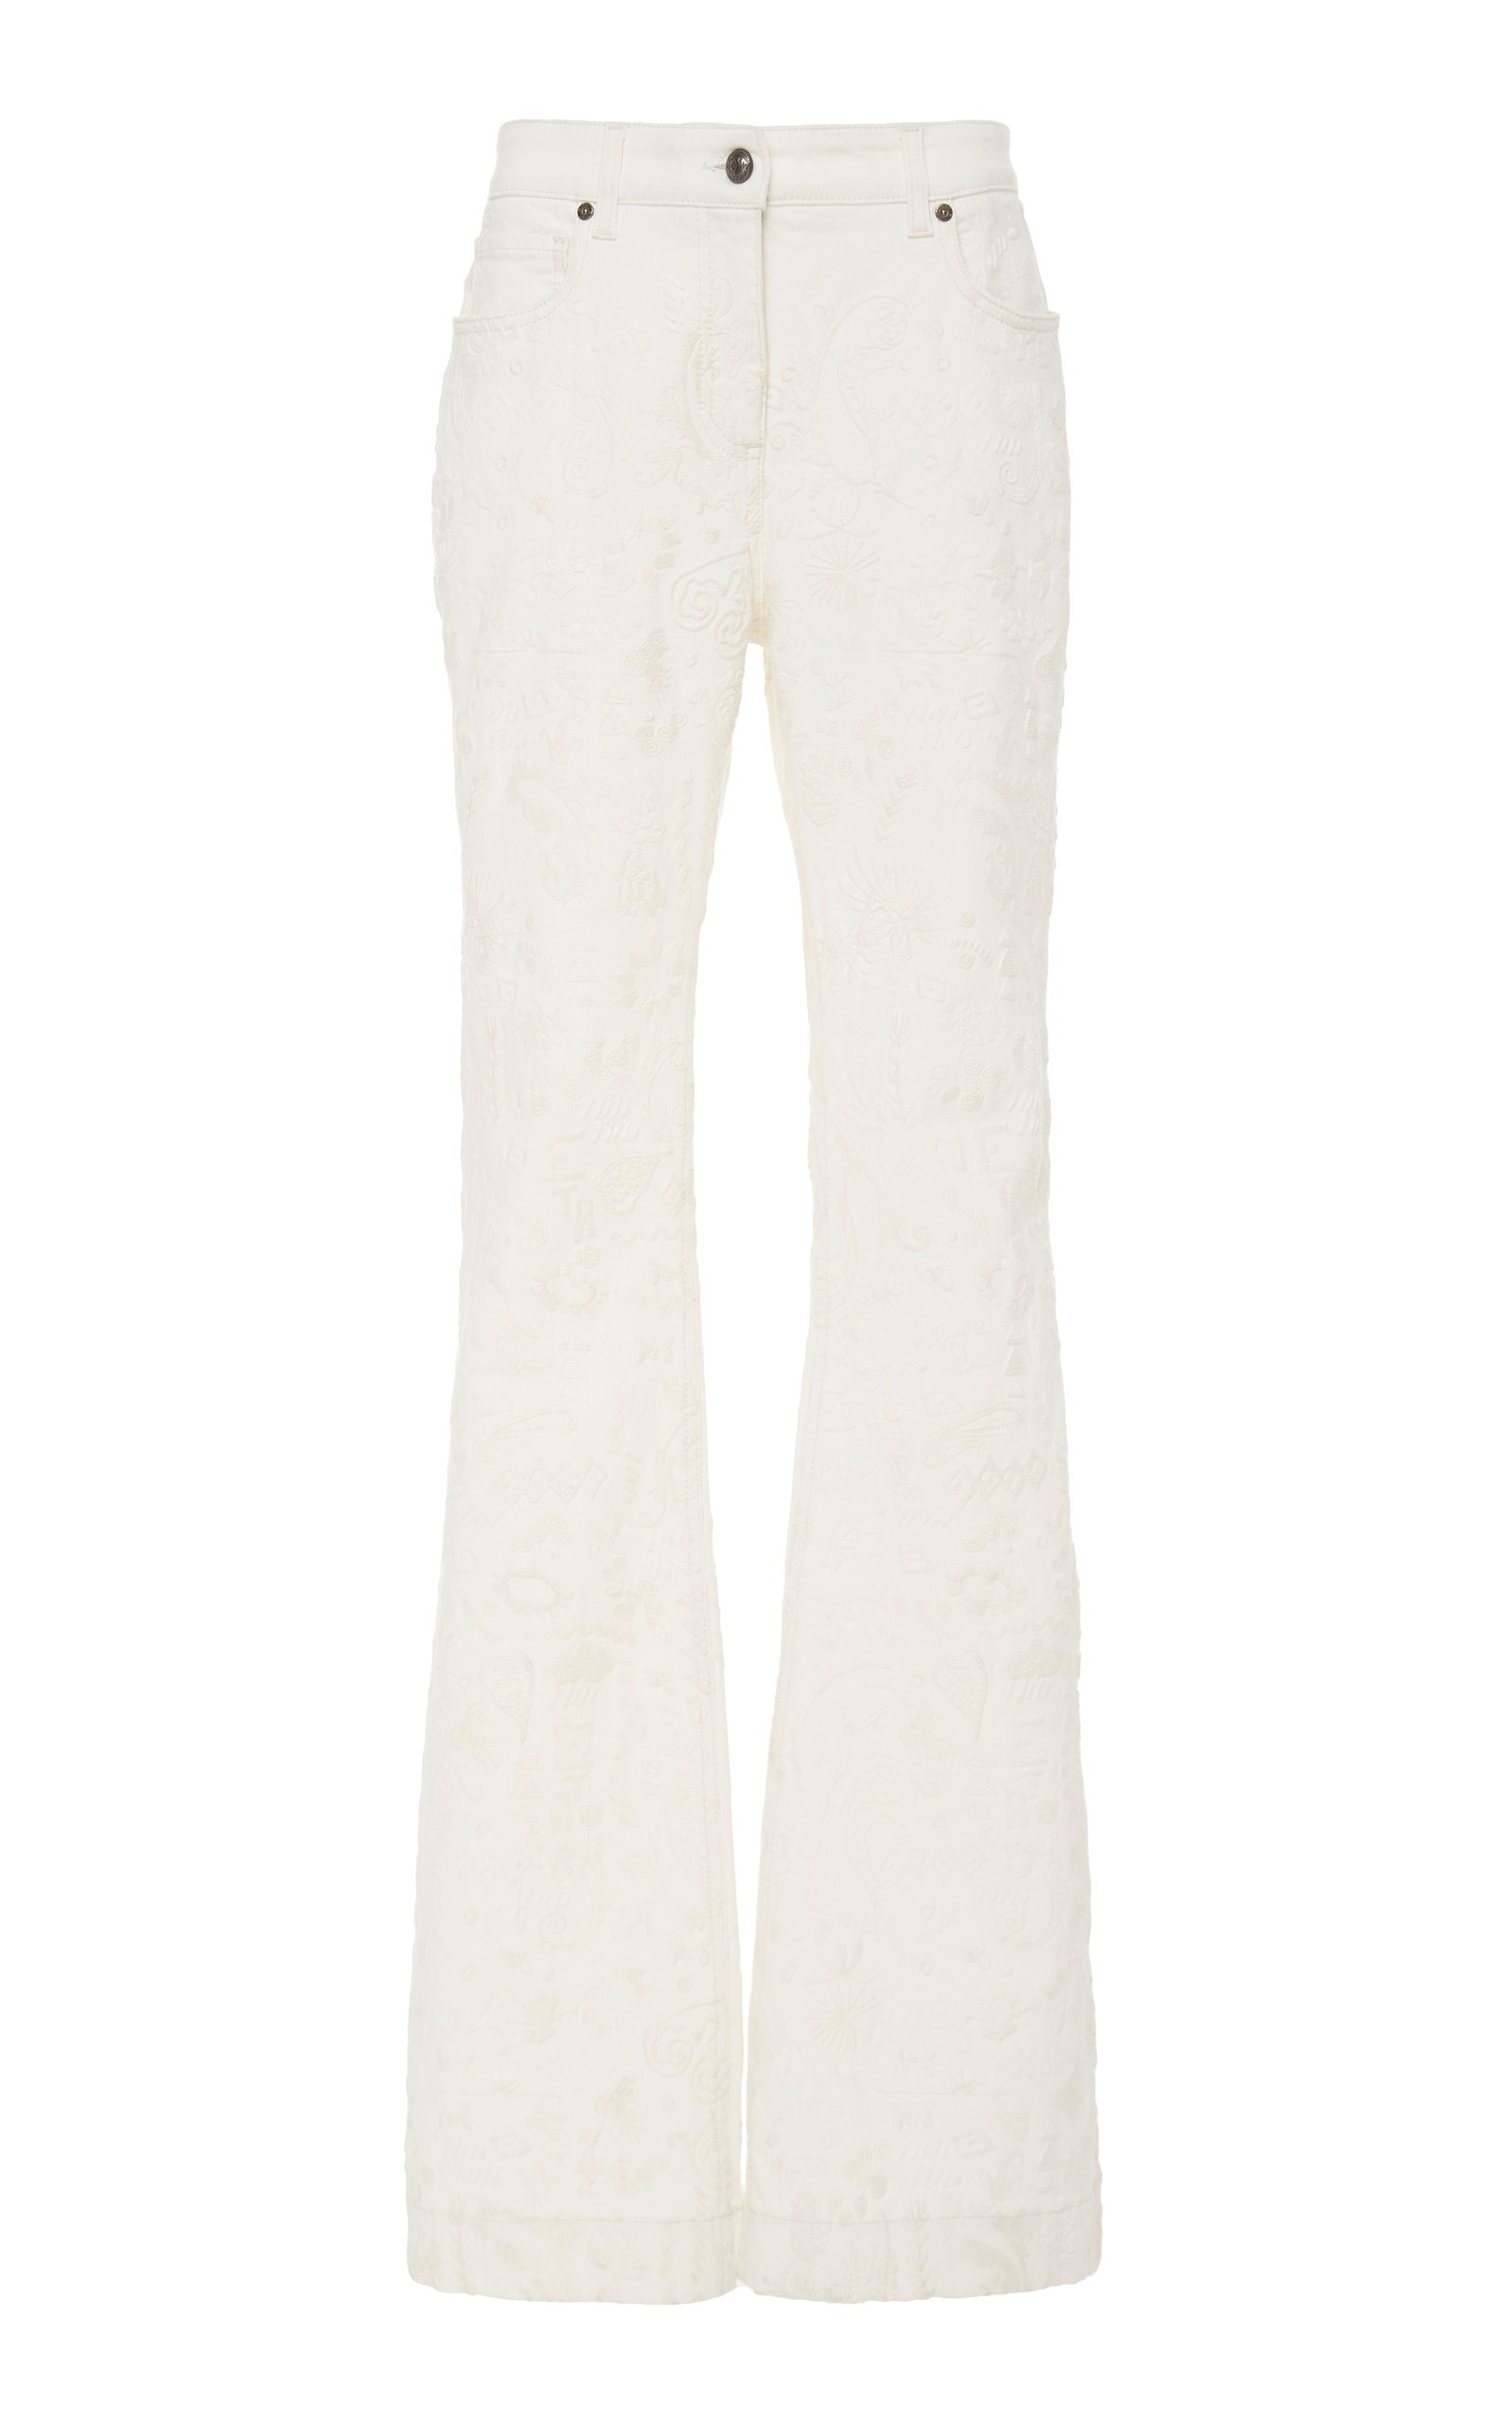 Etro Embroidered High-Waist Pants